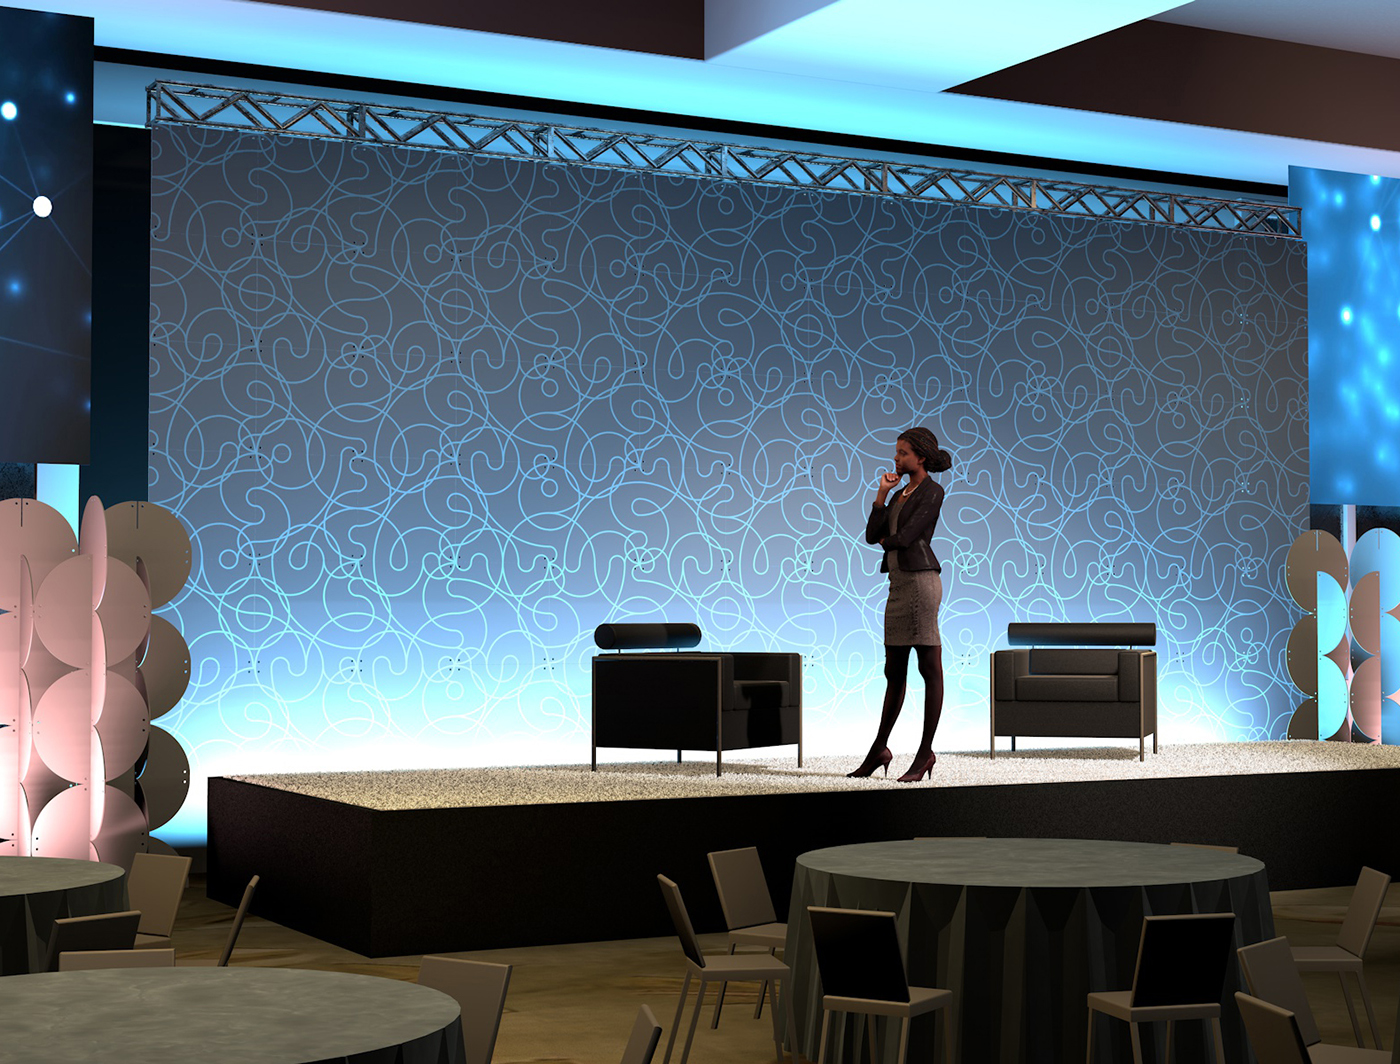 Swirl backdrop sets the stage for any show